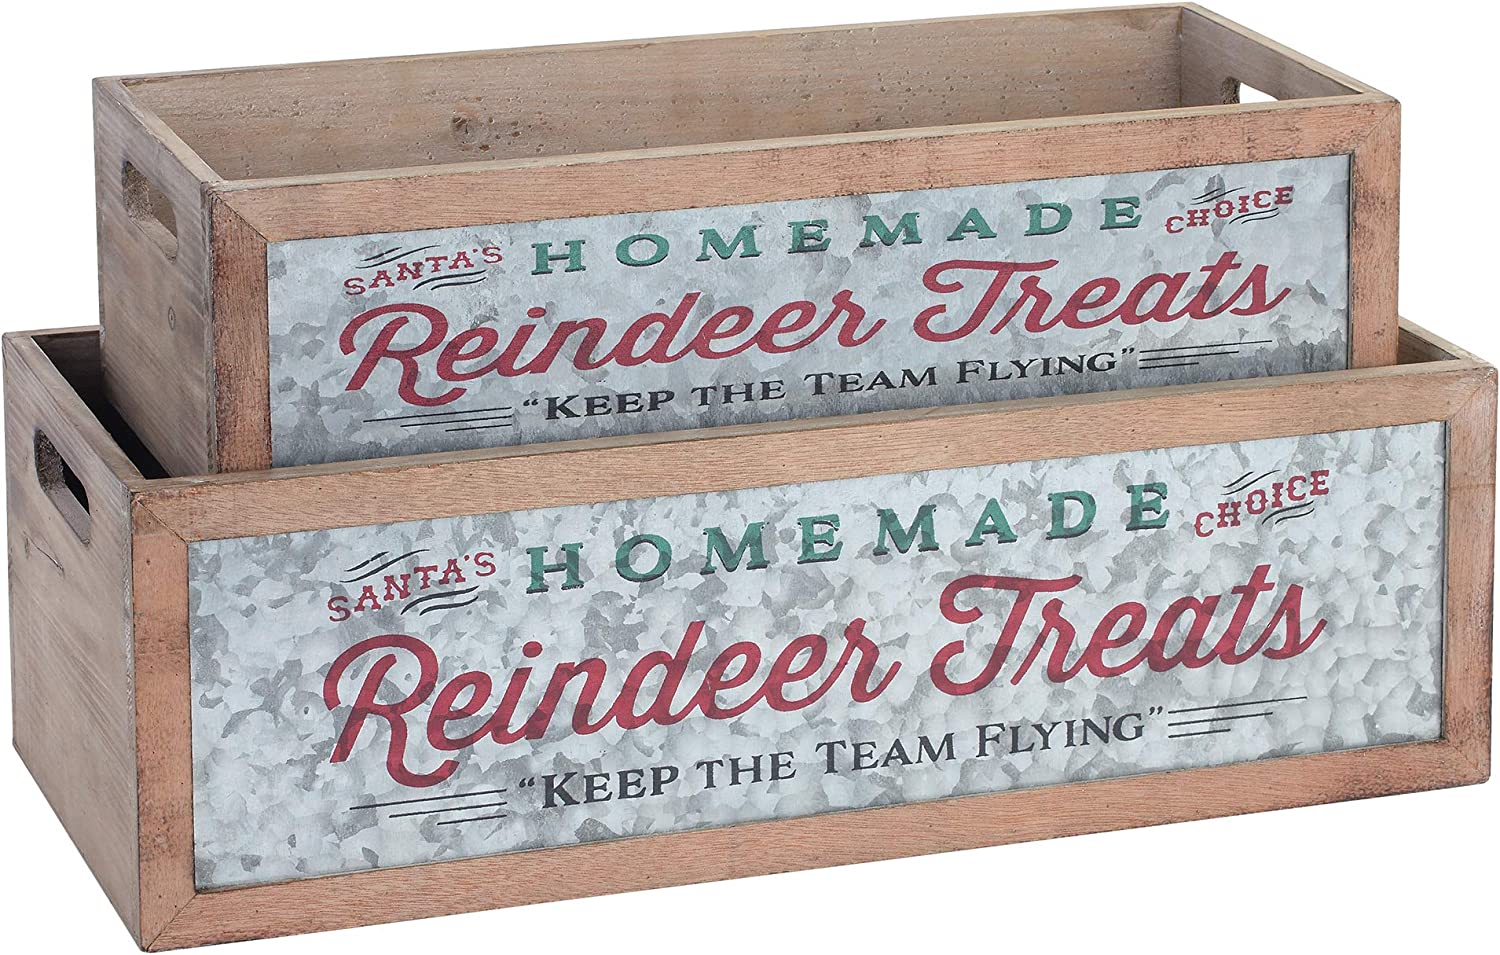 Napco Homemade Reindeer Treats Red and Green 19.5 x 6.25 Wood Decorative Planter Box, Set of 2